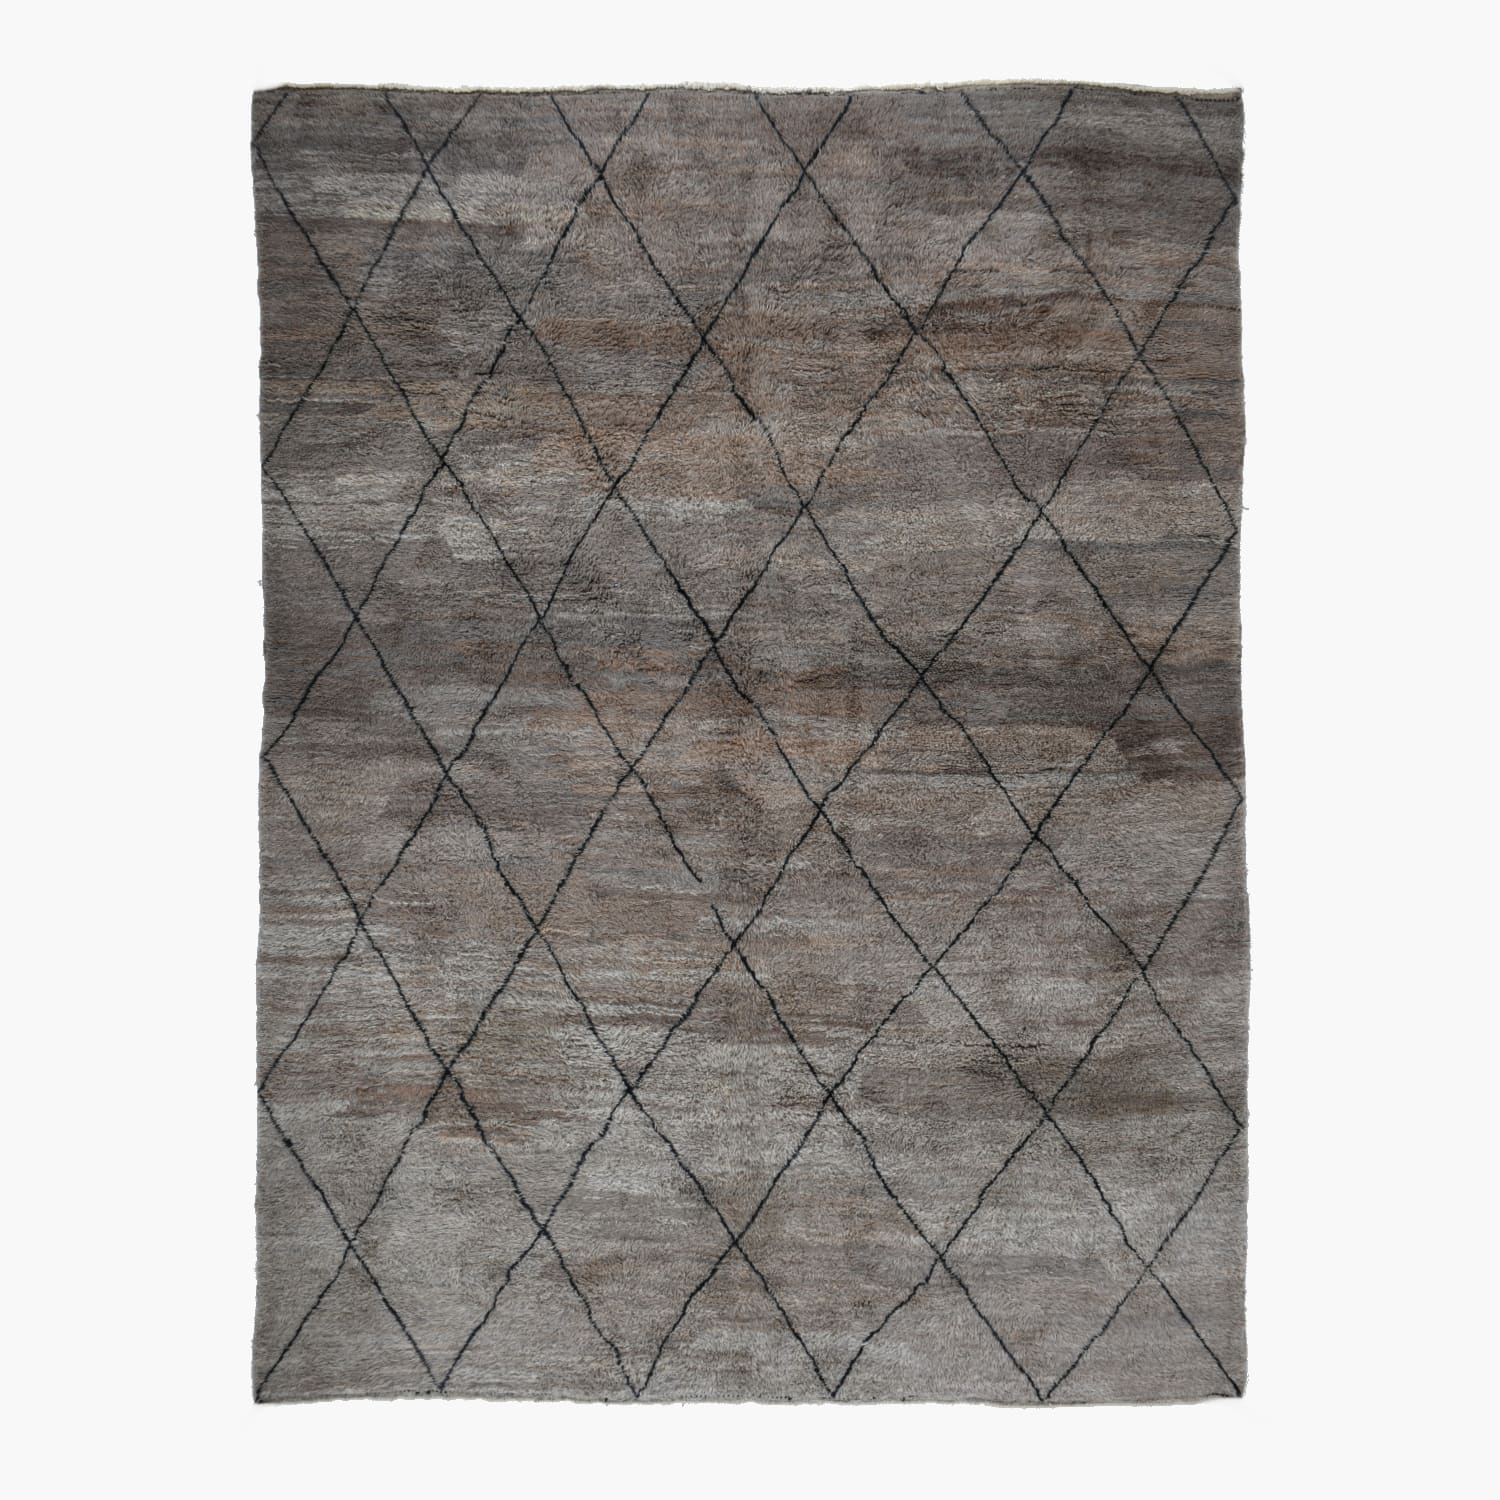 Luxury Mrirt rug 10.1 x 13.2 ft / 307 x 401 cm - Mrirt Rug